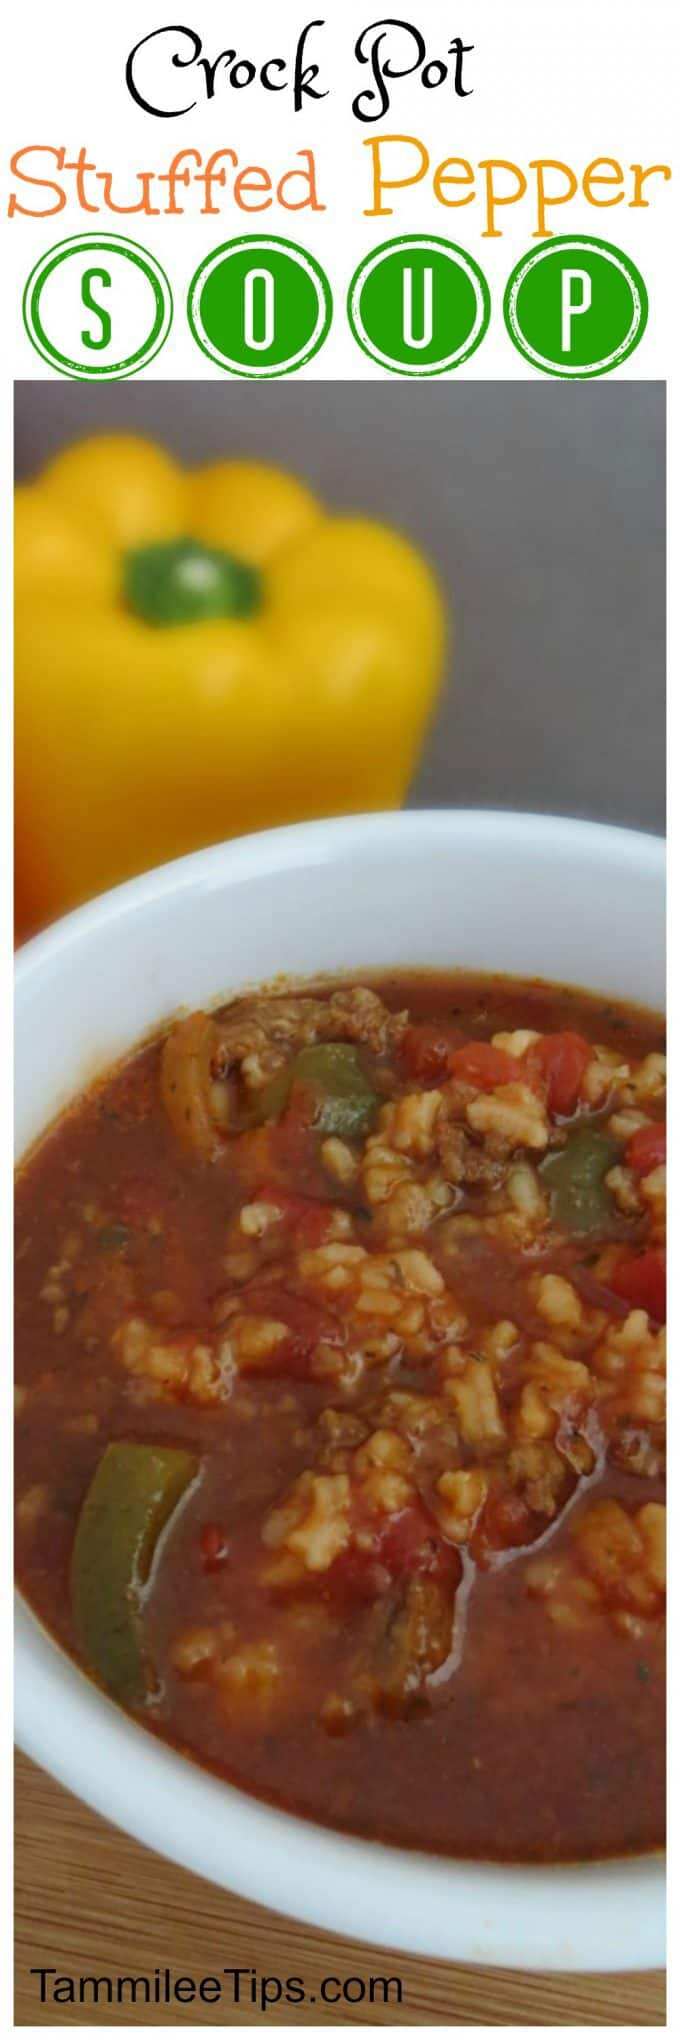 Crockpot Stuffed Pepper Soup Recipe! So easy to make the slow cooker does all the work for you. One of the best crock pot soup recipes for a cold evening! Everyone will love it!